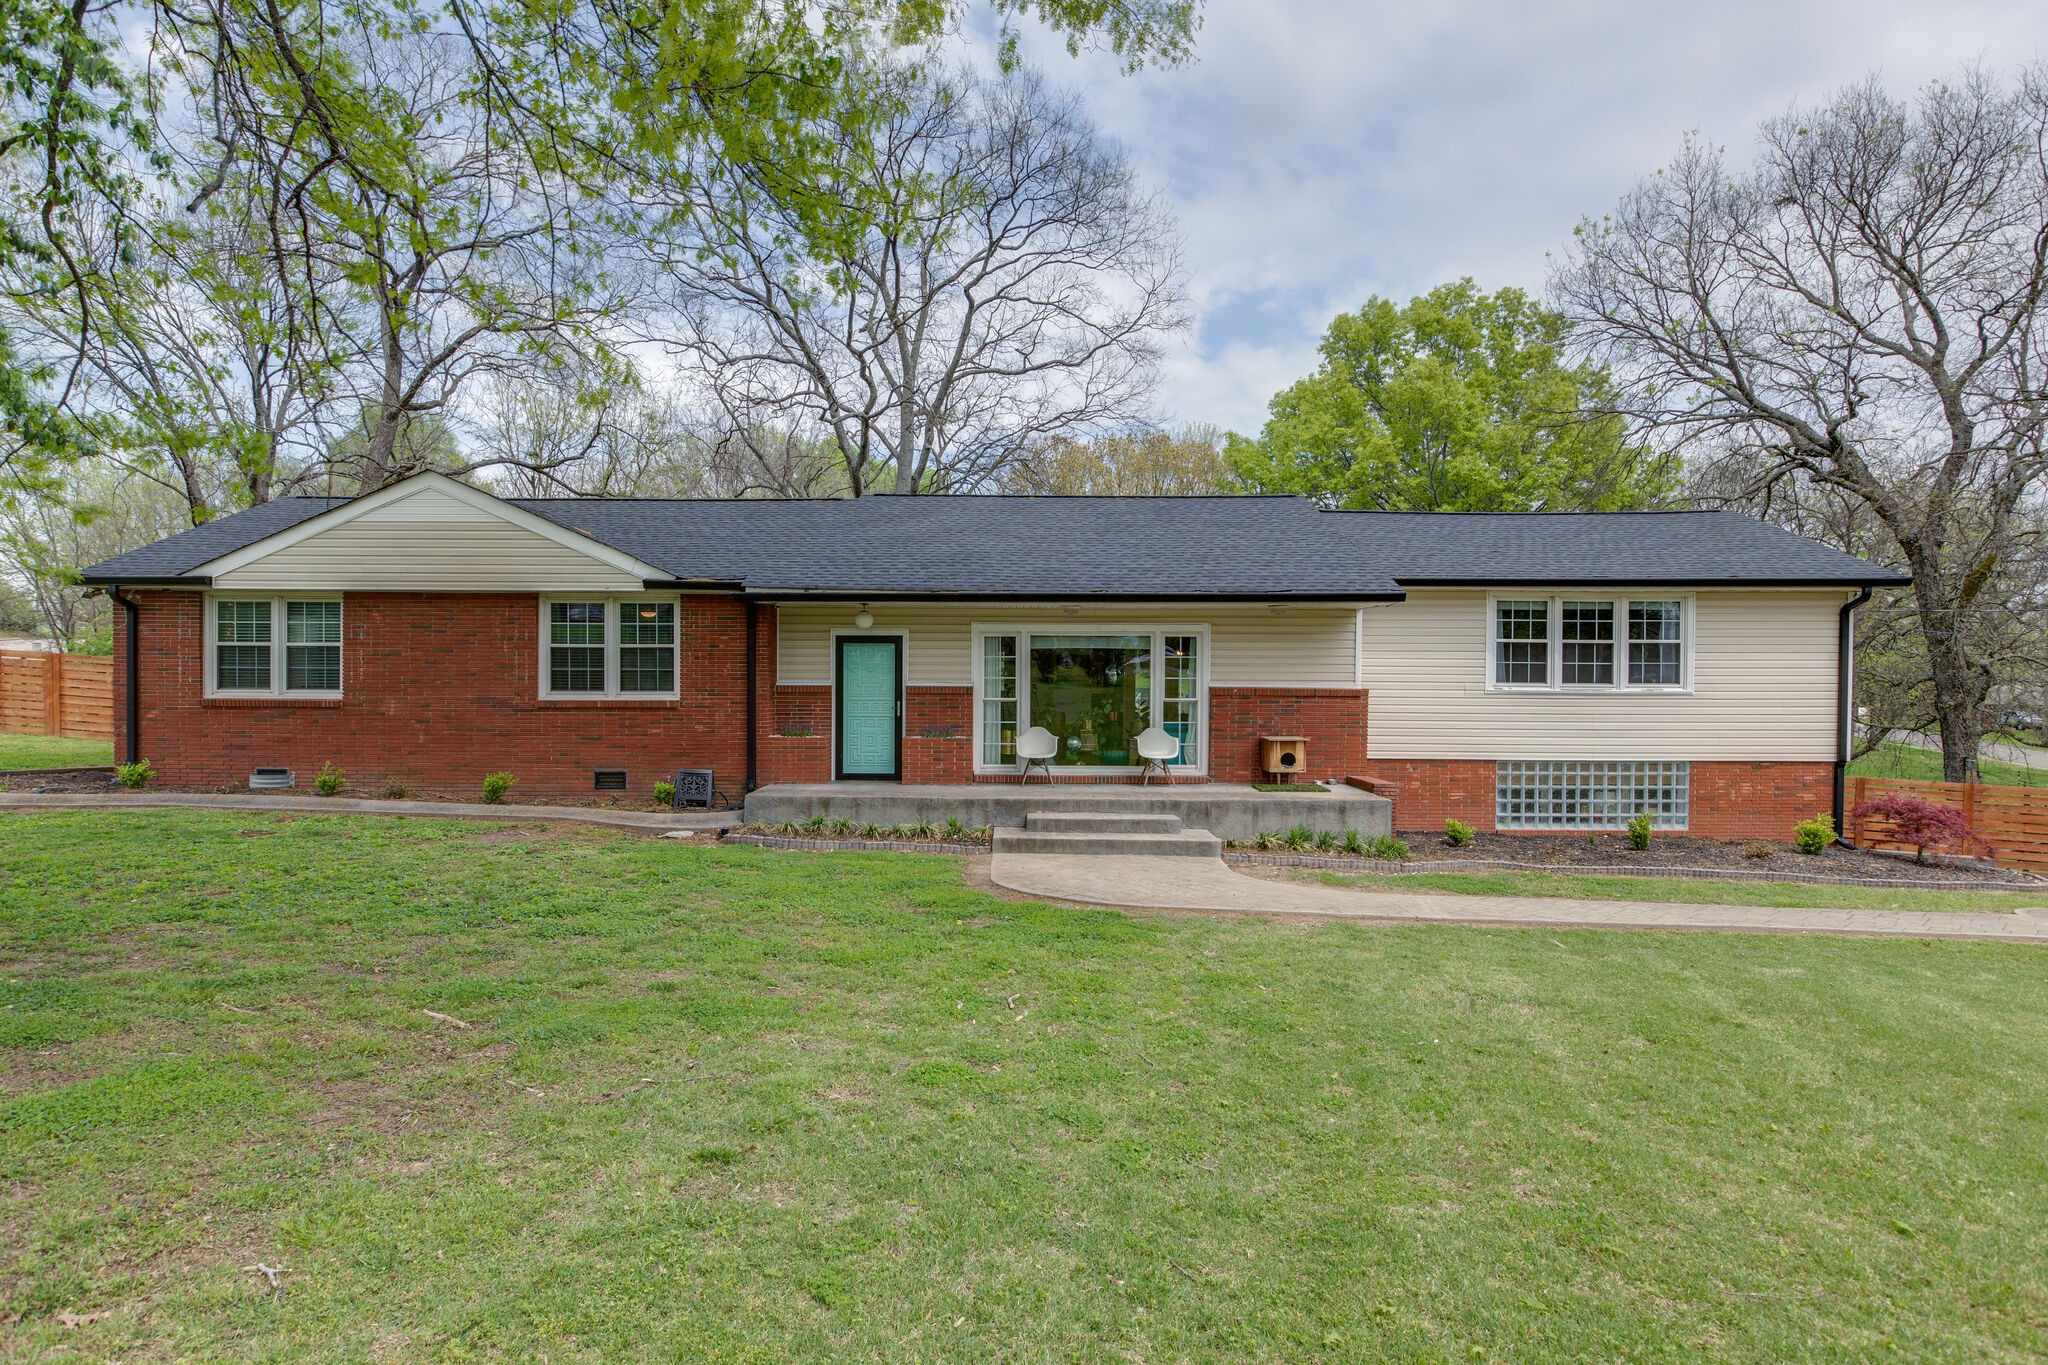 906 Chadwell Dr Property Photo - Madison, TN real estate listing